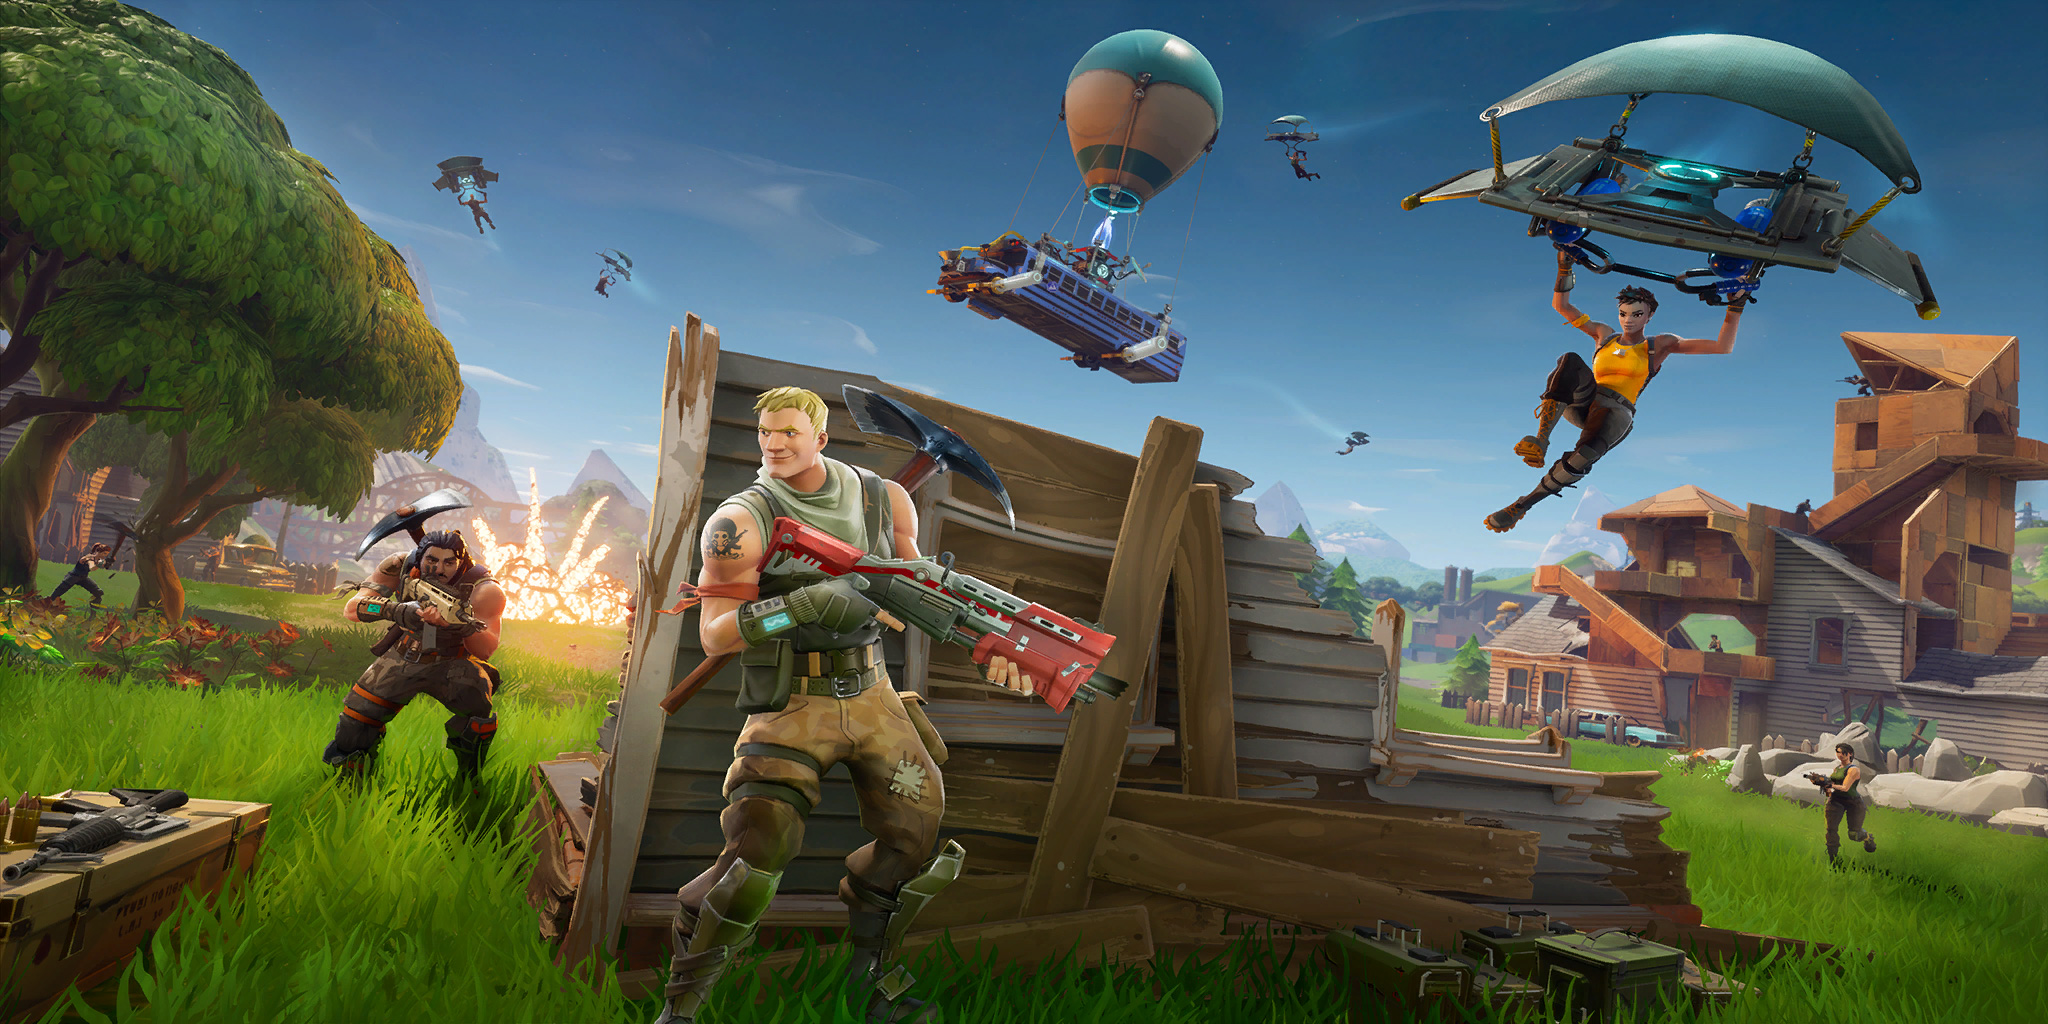 Battle Royale Loading Screen image